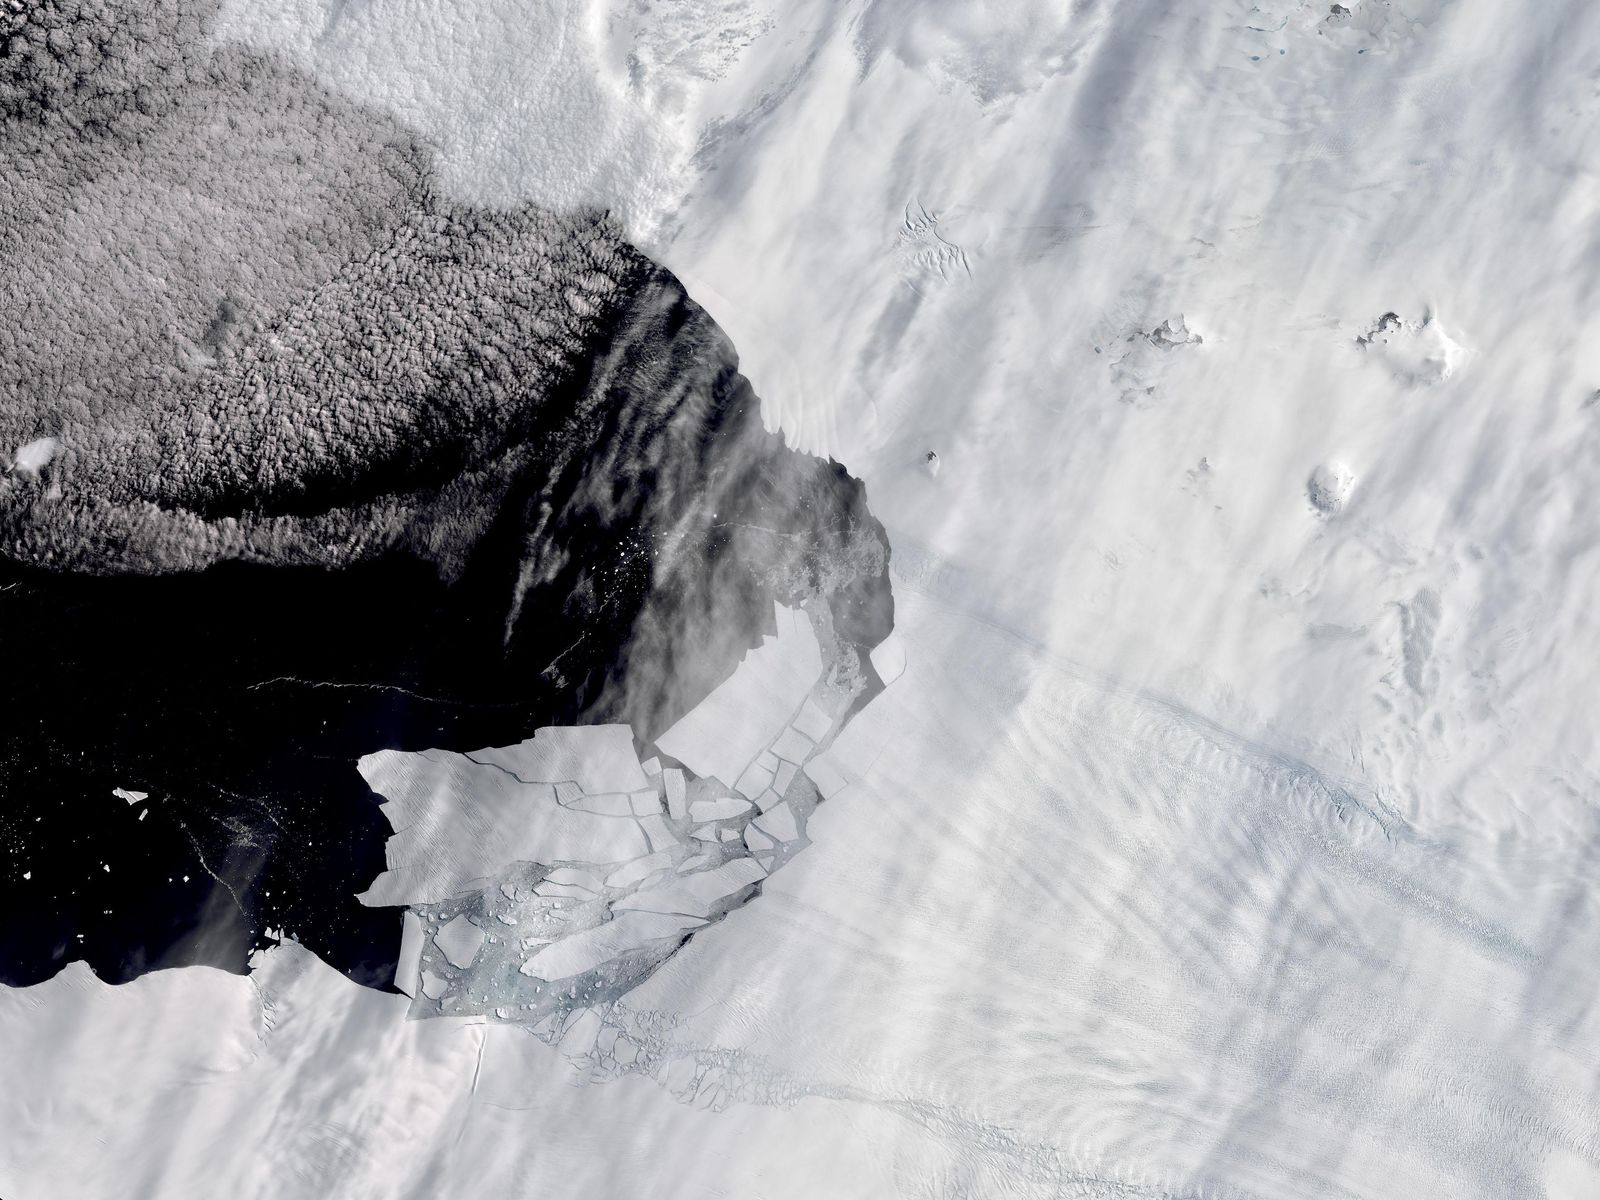 As Glaciers Melt, a New Island Popped Up in Antarctica